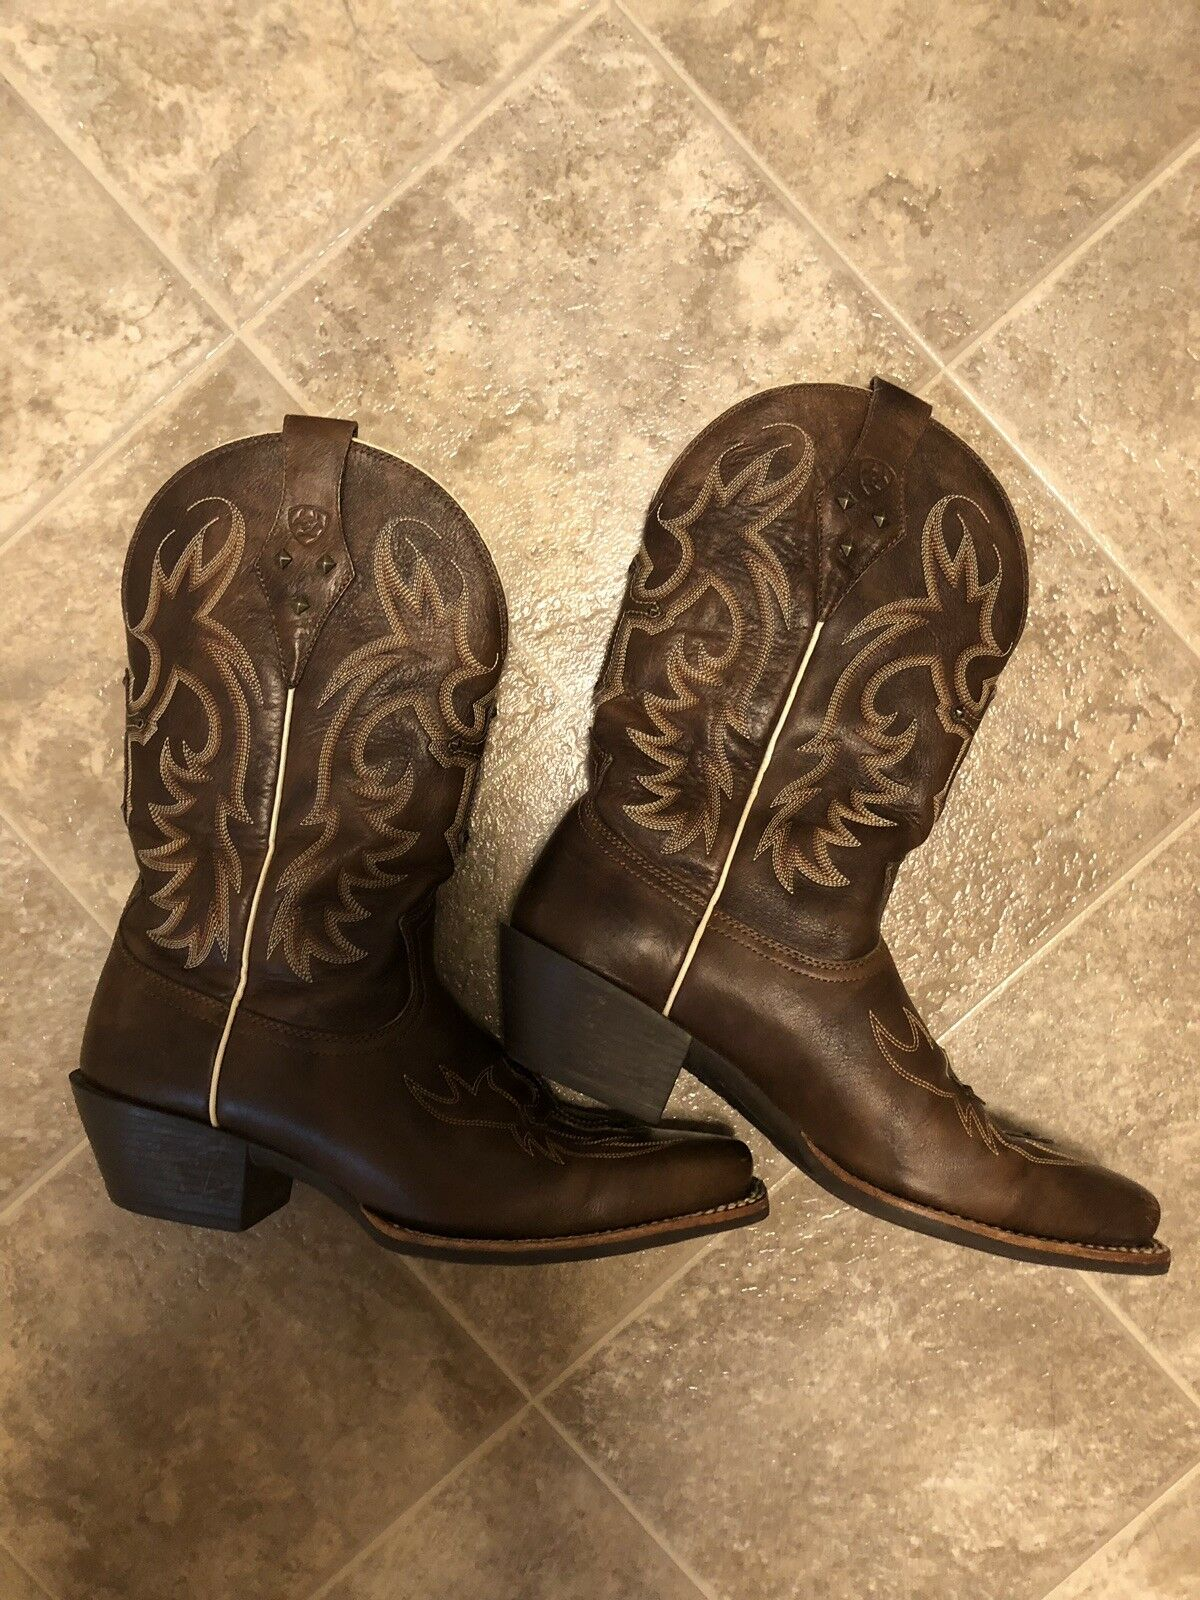 Ariat Womens Brown Leather Cowboy Boots Size 10 B